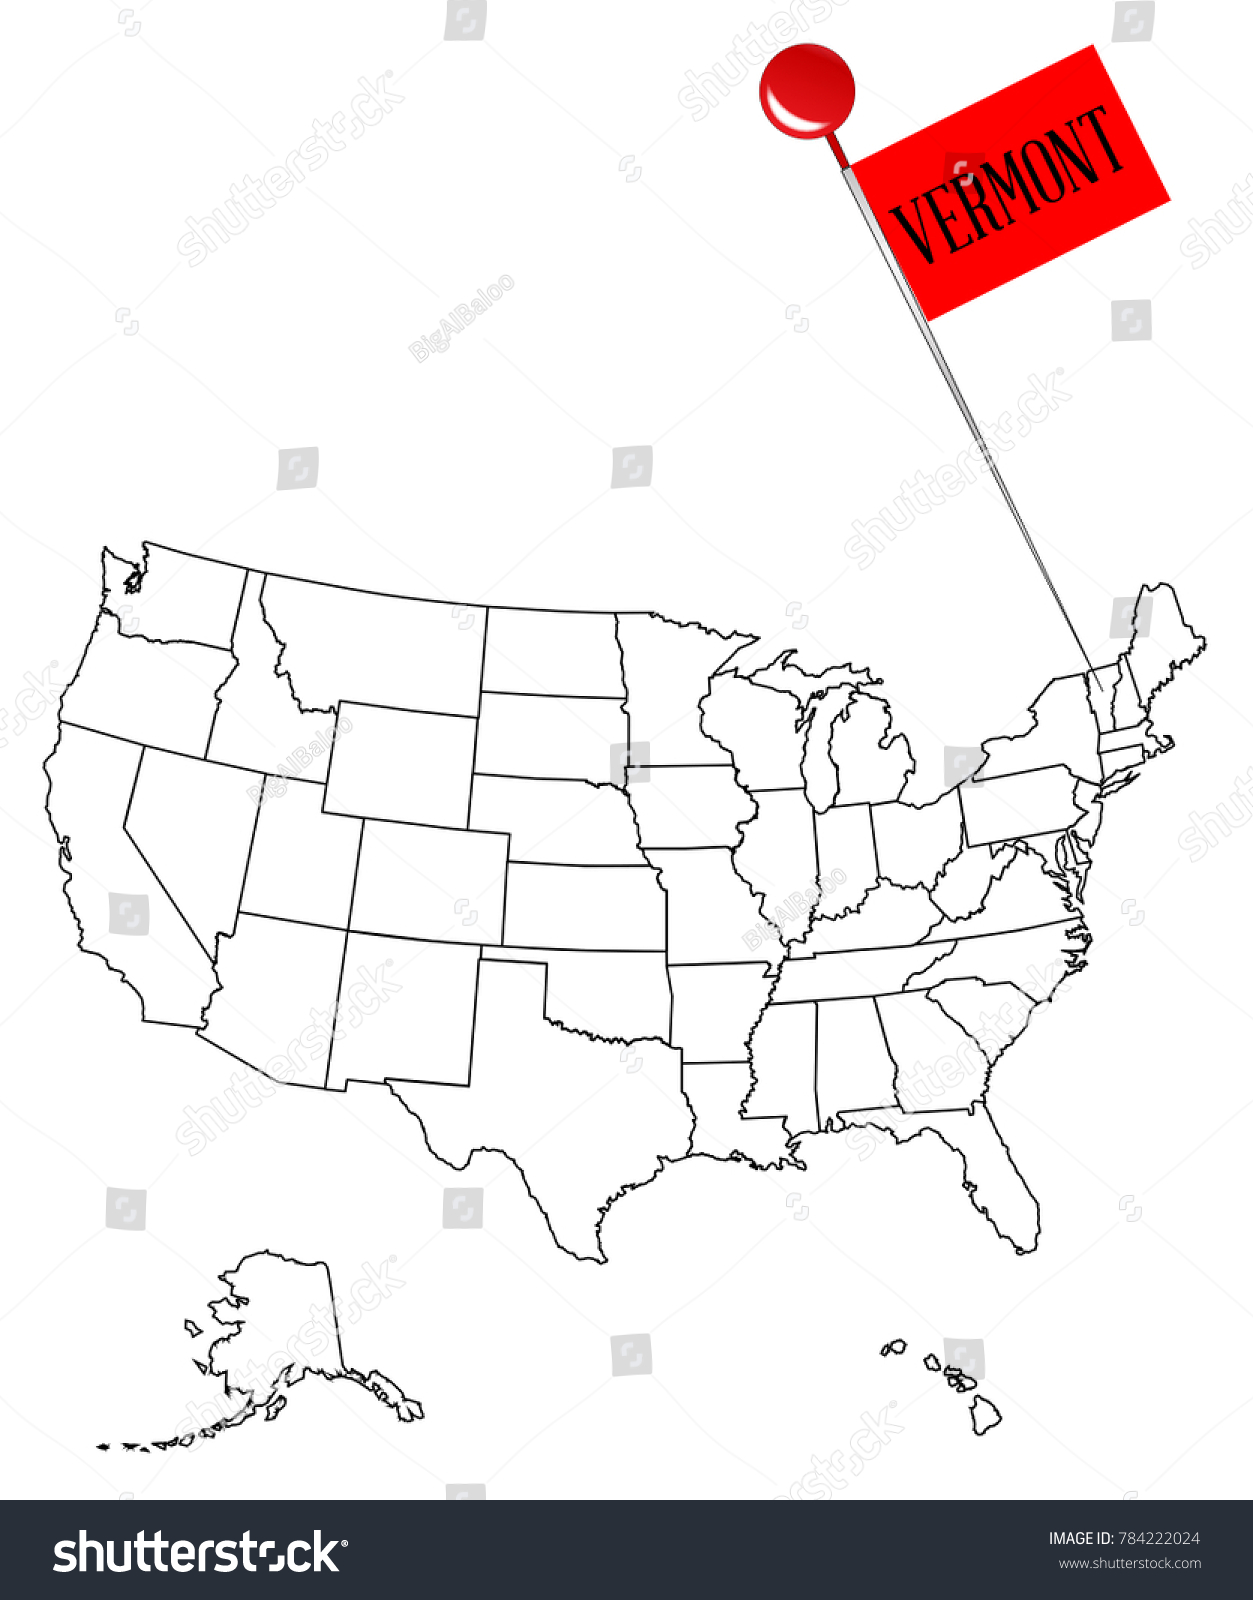 an outline map of usa with a knob pin in the state of vermont